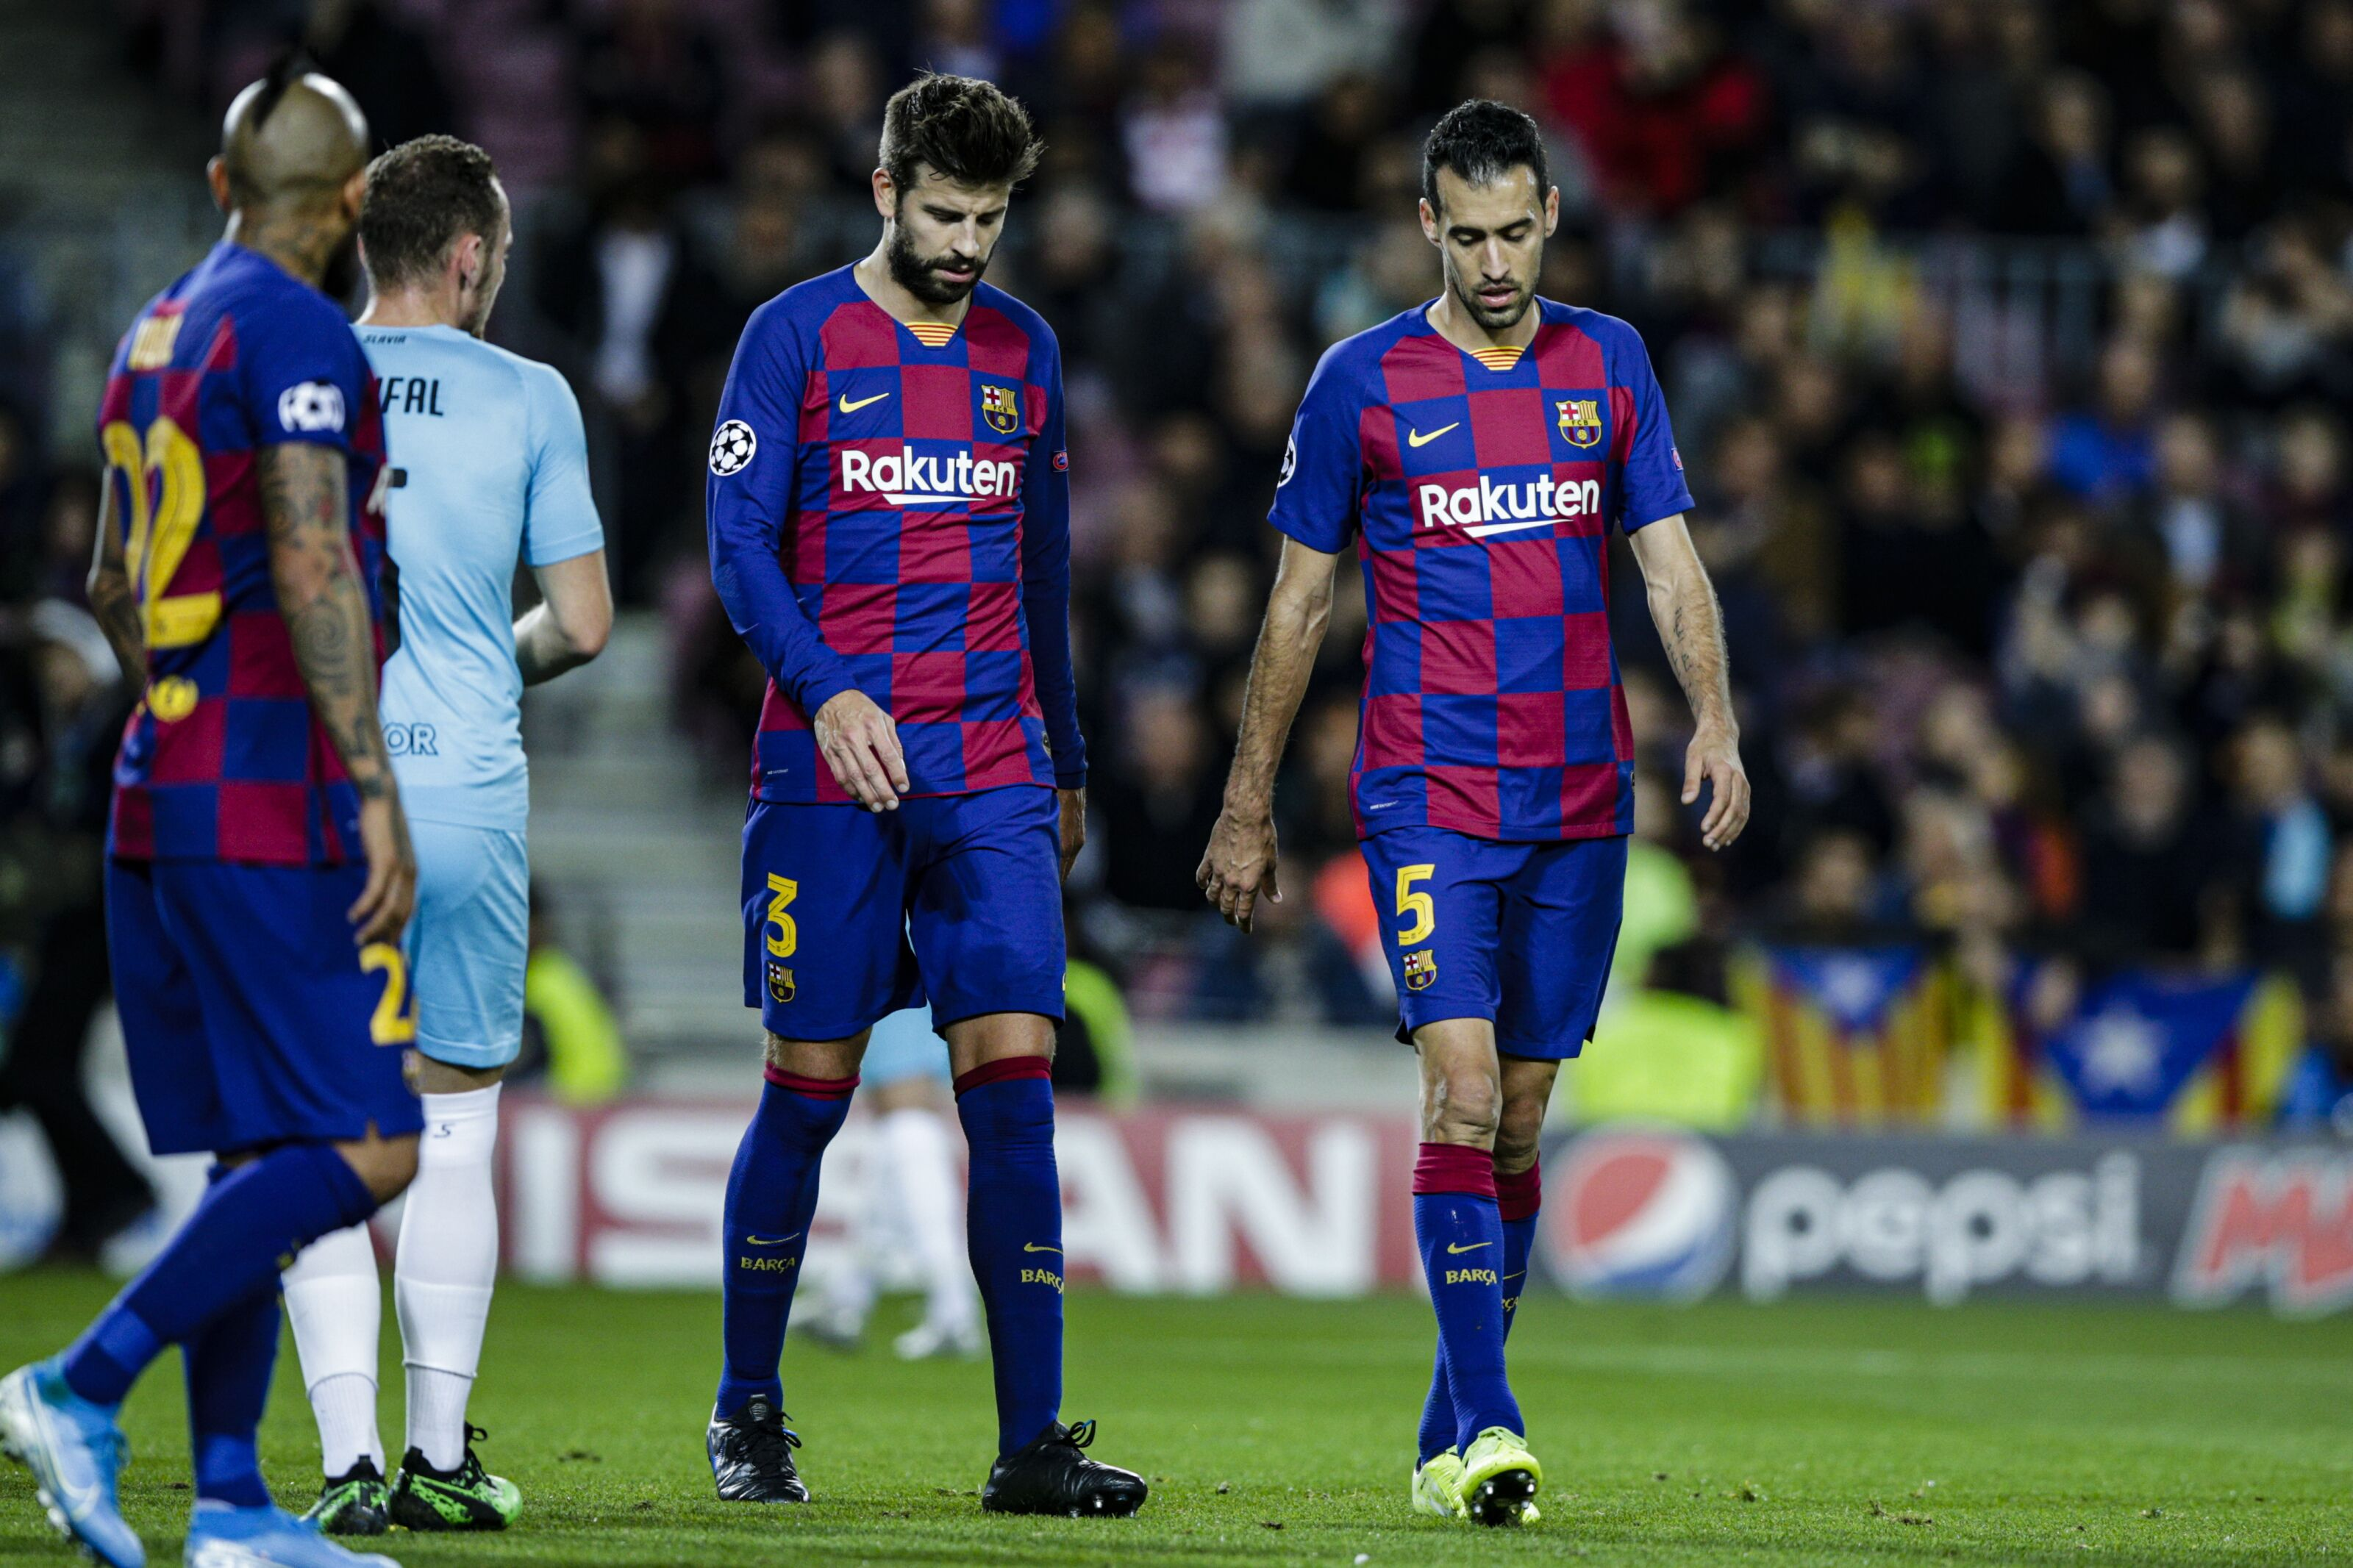 Barcelona vs Celta: Expected Starting XI for very important league clash